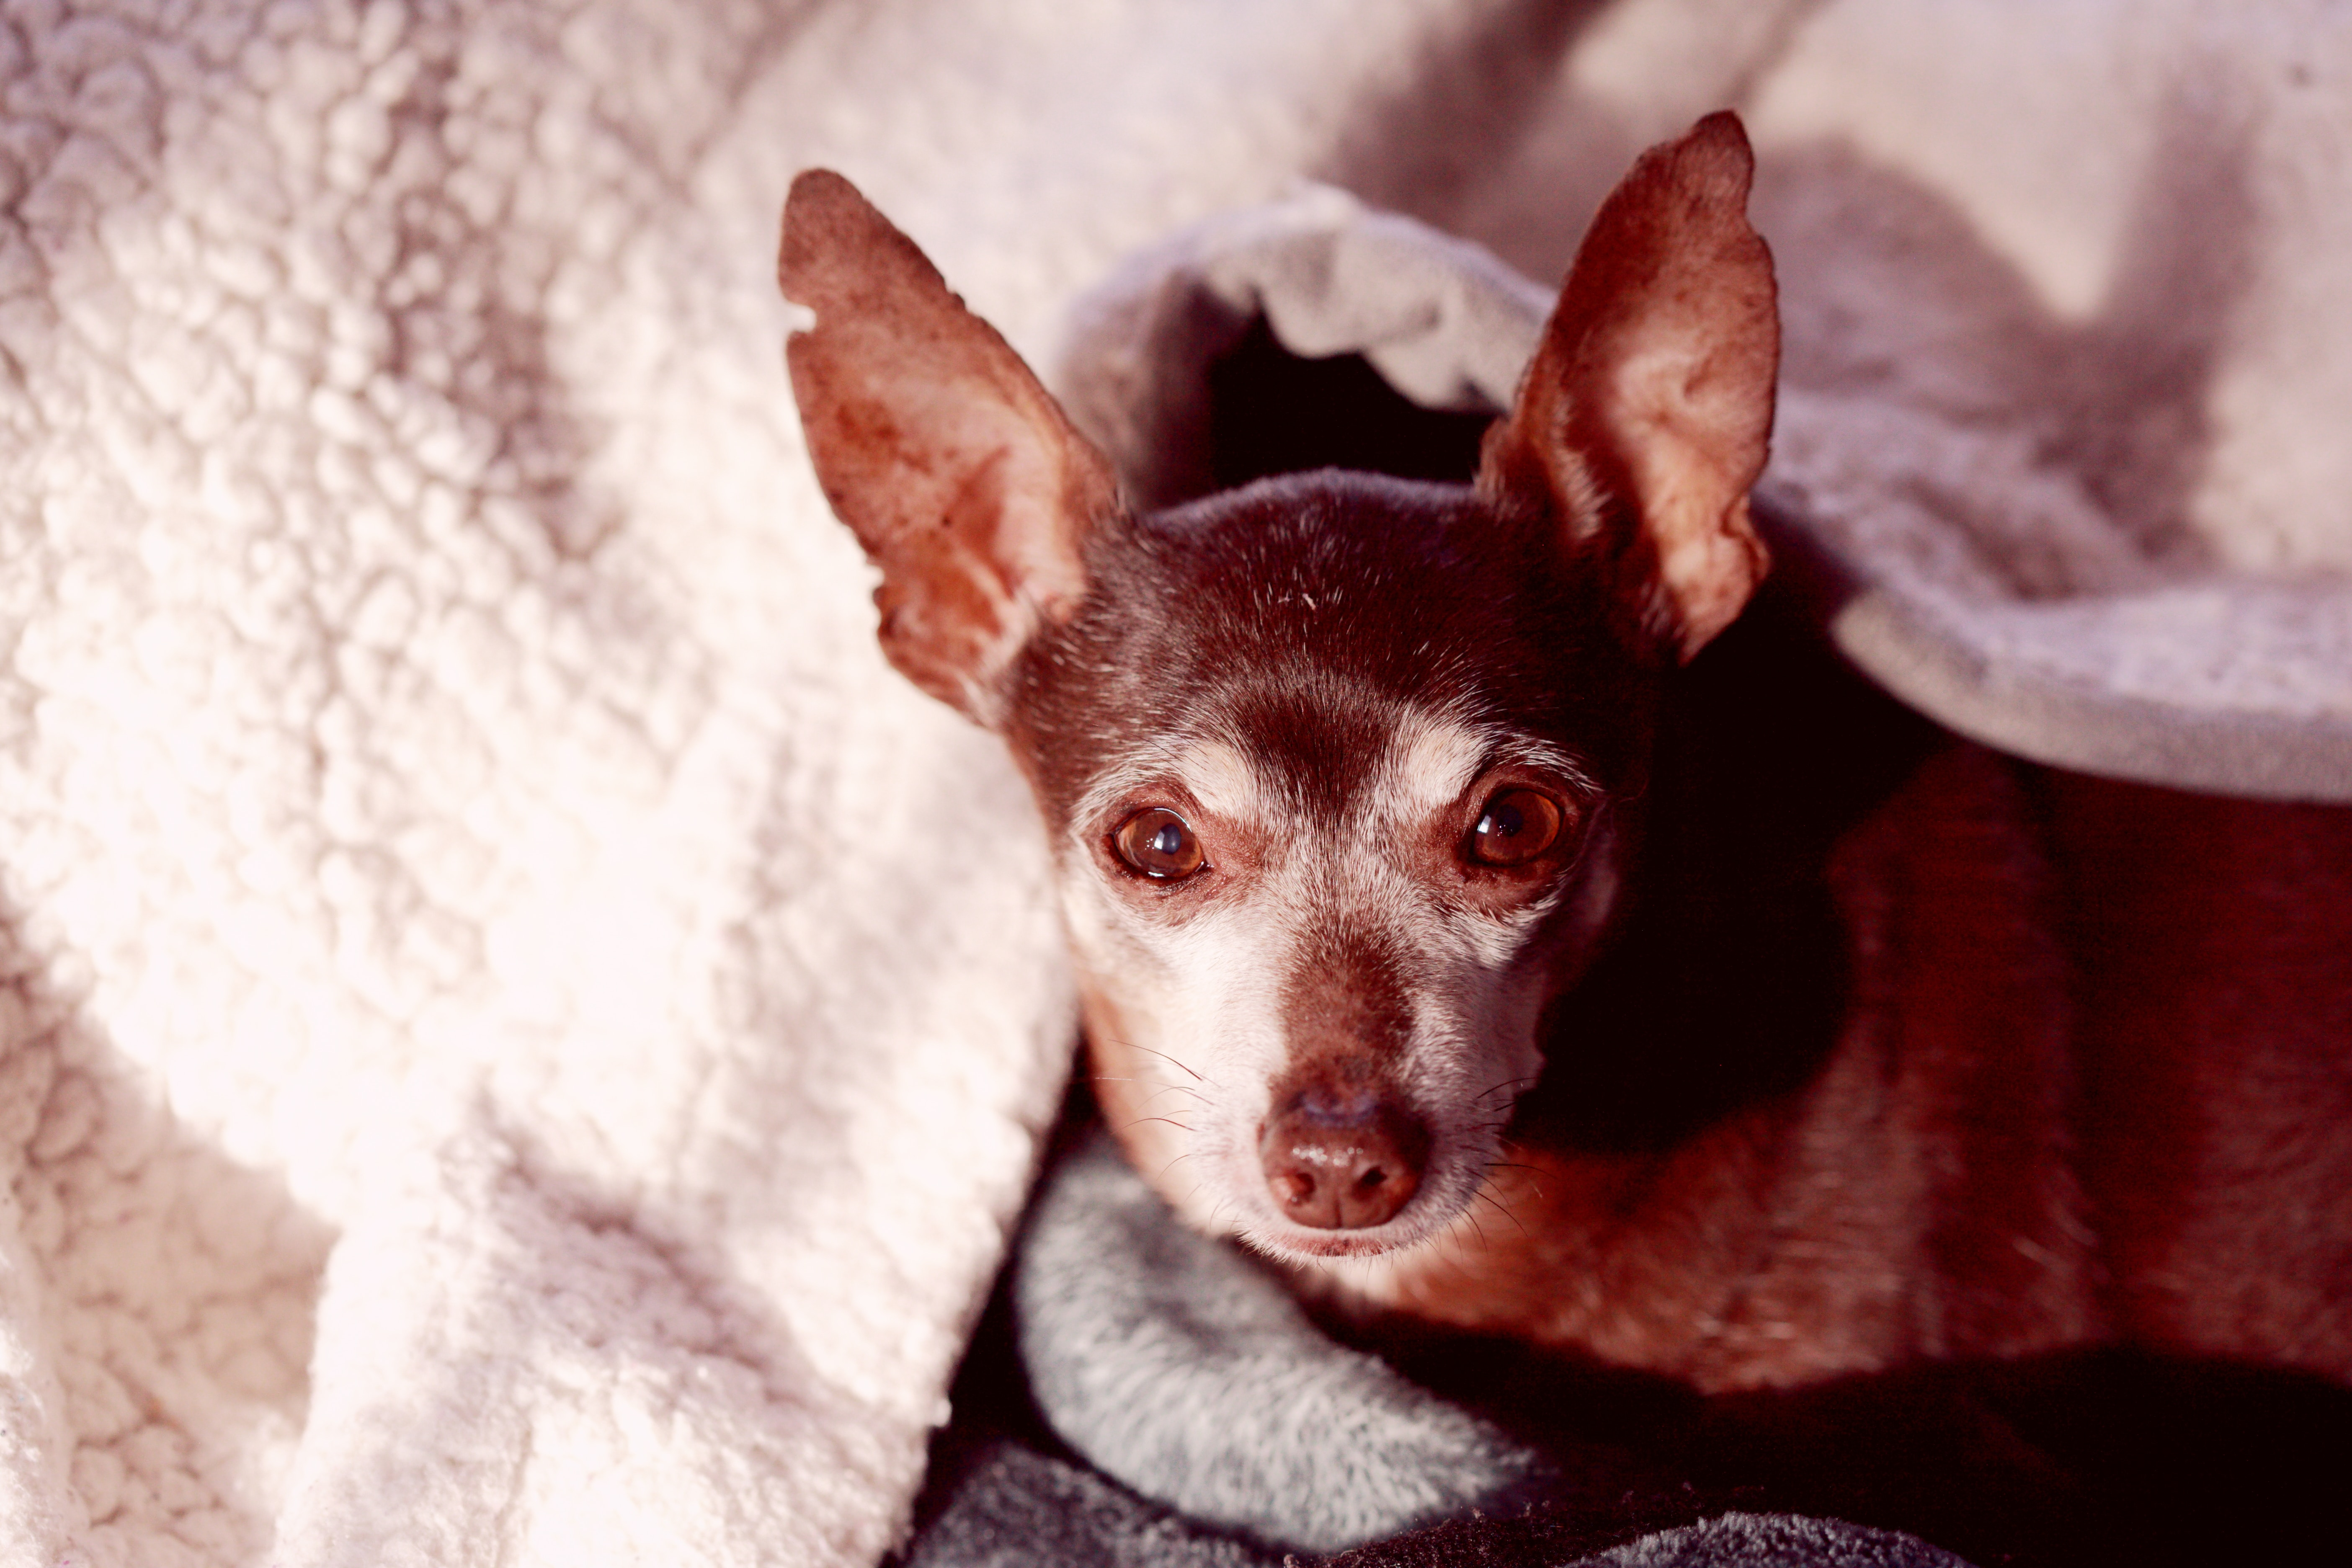 Brown Chihuahua under blanket